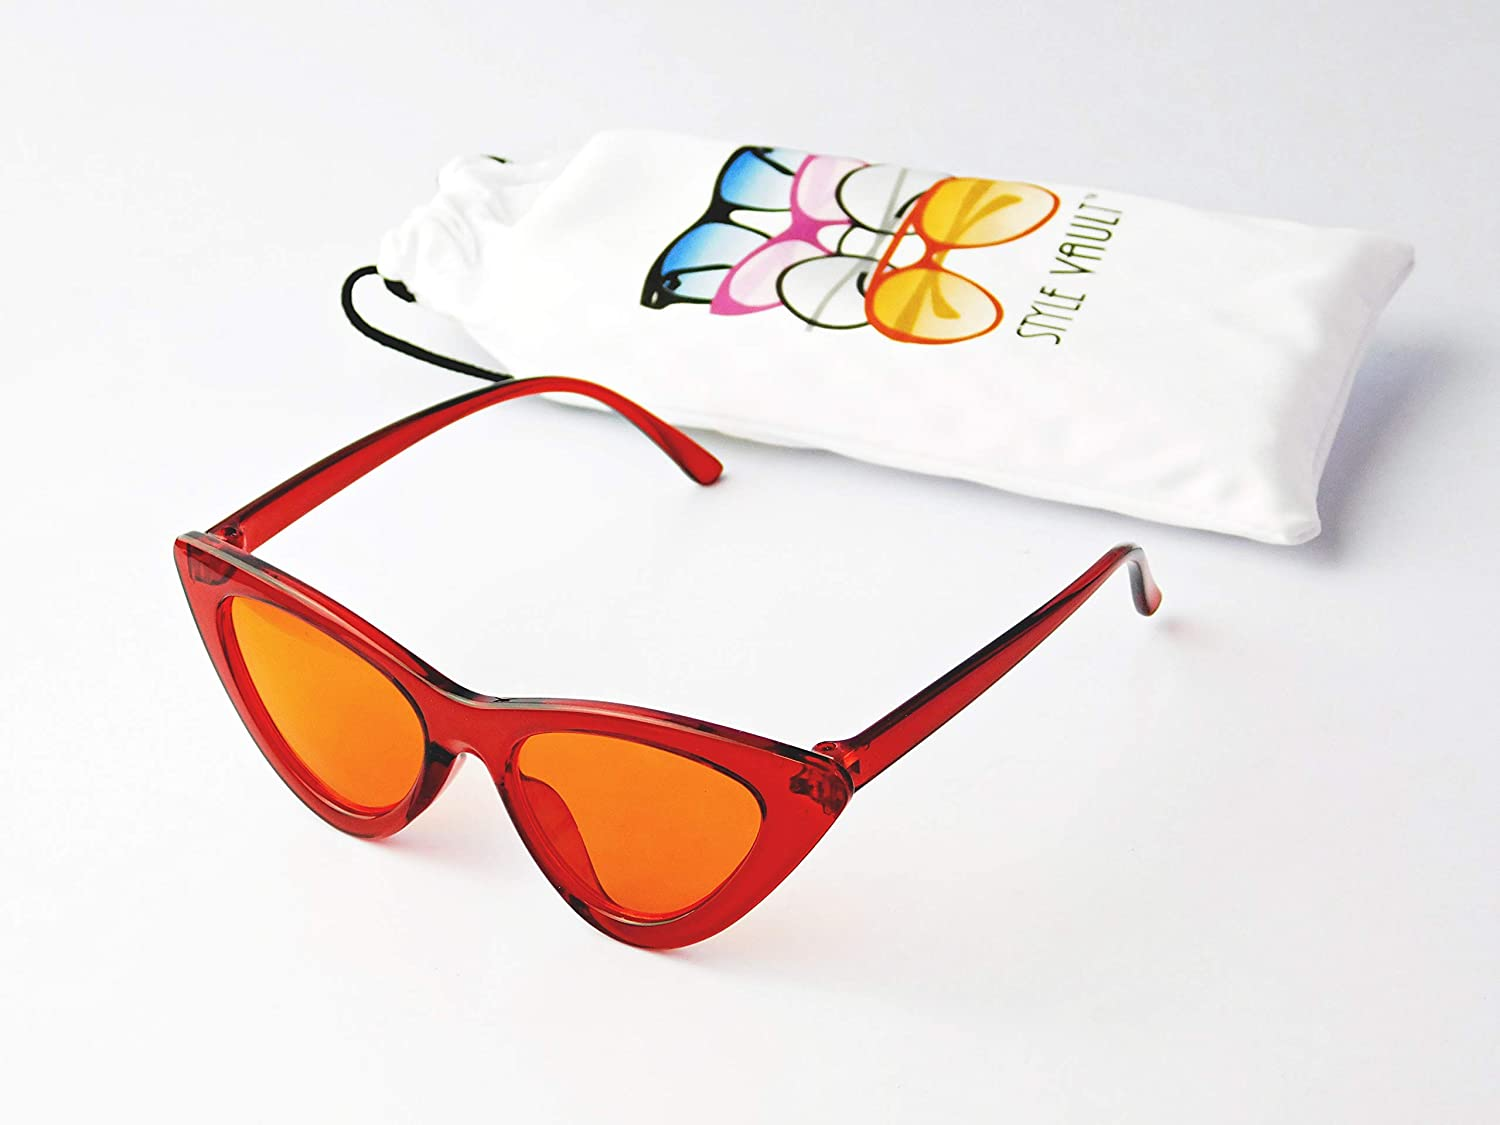 KD3151 Baby Infant Toddlers Age 0-18 Months T-Cateye Tiny Sunglasses